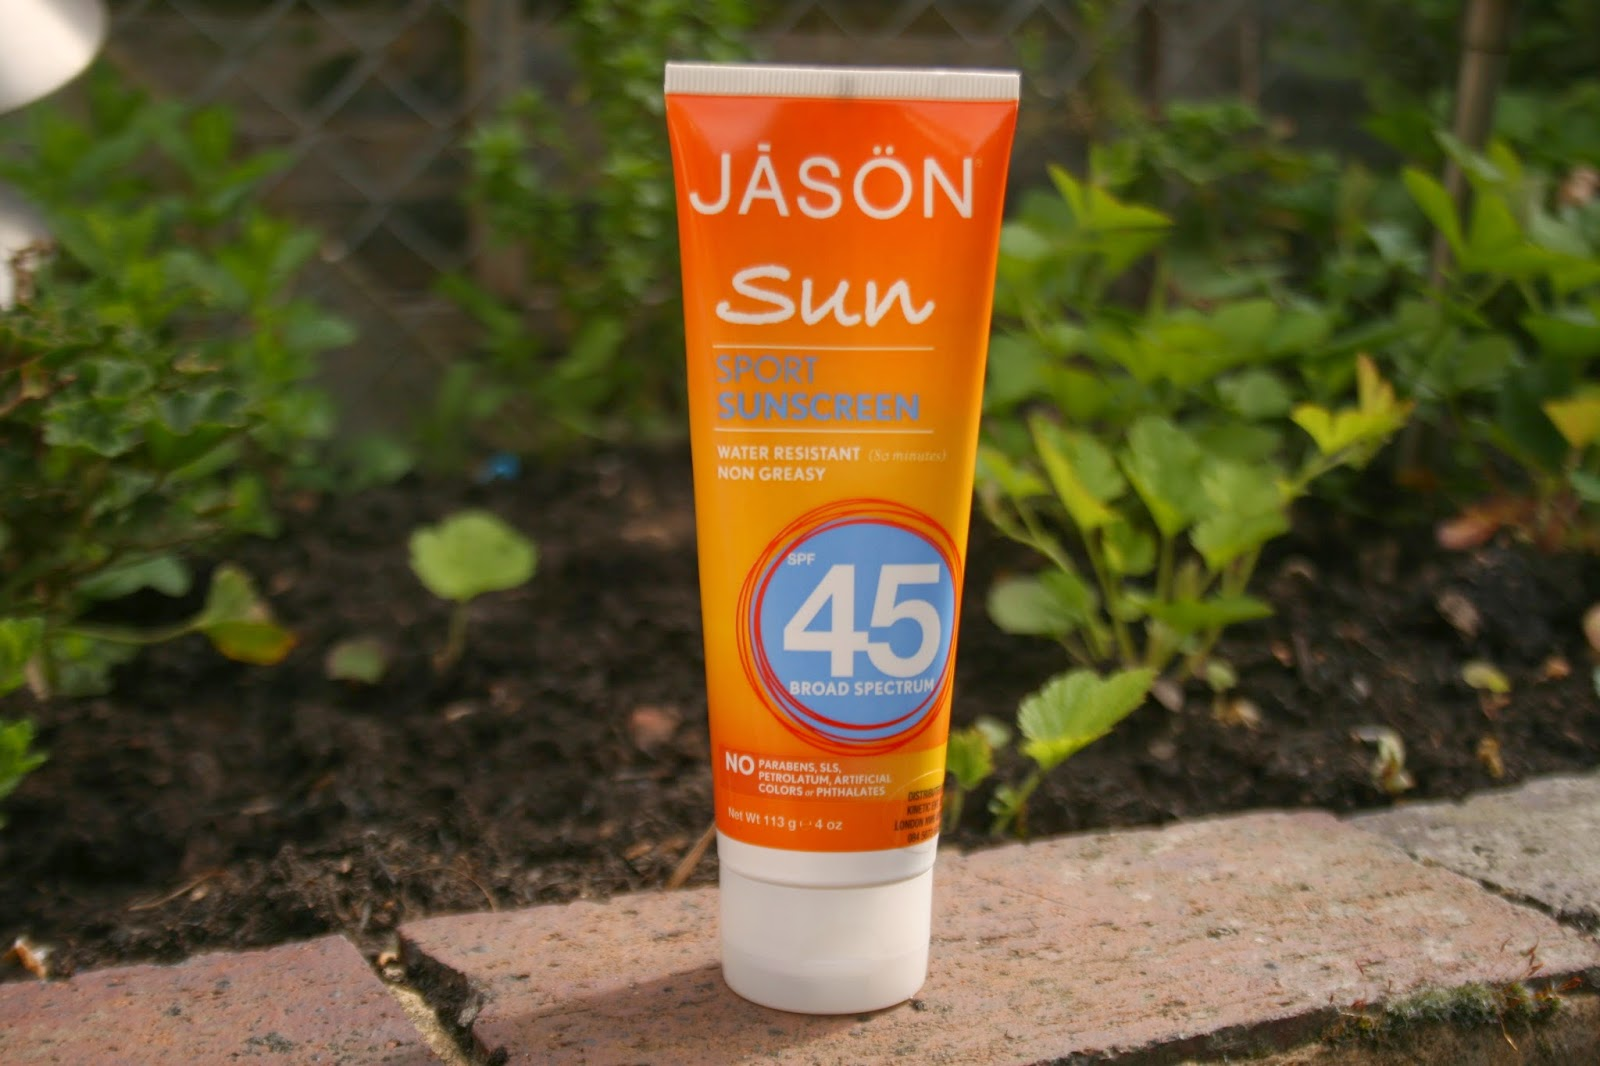 Review | Jåsön sun sport